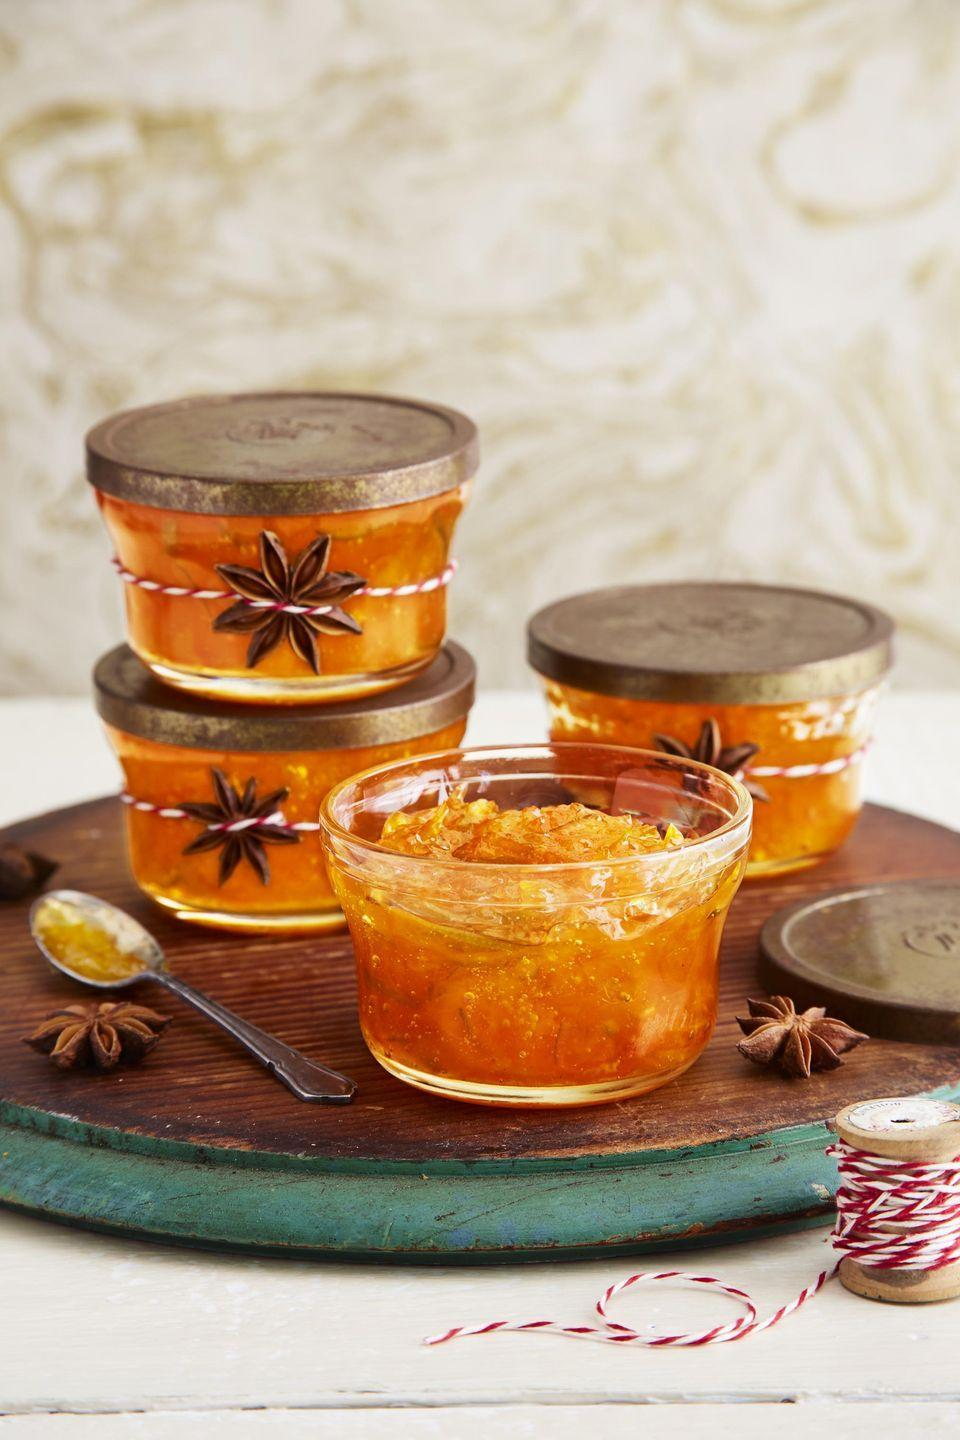 """<p>Flavored with ginger and star anise friends and loved one will be snacking on this marmalade into the new year.</p><p><strong><a href=""""https://www.countryliving.com/food-drinks/a34330744/citrus-marmalade/"""" rel=""""nofollow noopener"""" target=""""_blank"""" data-ylk=""""slk:Get the recipe"""" class=""""link rapid-noclick-resp"""">Get the recipe</a>.</strong></p><p><a class=""""link rapid-noclick-resp"""" href=""""https://www.amazon.com/Soeos-Anise-Seeds-Estrella-Chinese/dp/B071WQTK9J/ref=sr_1_1_sspa?tag=syn-yahoo-20&ascsubtag=%5Bartid%7C10050.g.645%5Bsrc%7Cyahoo-us"""" rel=""""nofollow noopener"""" target=""""_blank"""" data-ylk=""""slk:SHOP STAR ANISE"""">SHOP STAR ANISE</a></p>"""